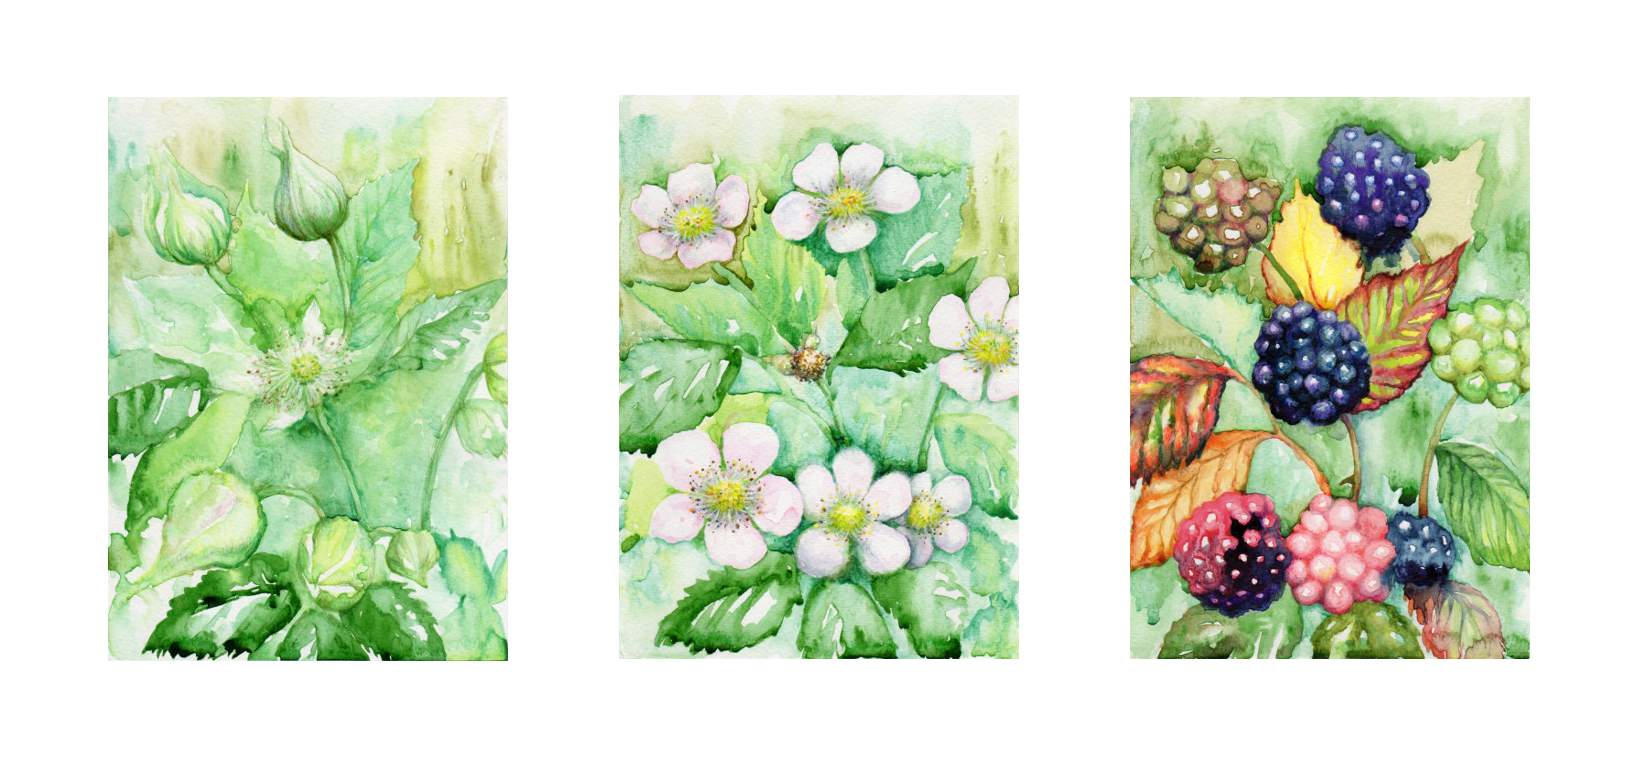 Katy Jones, 'Bramble Triptych.' Framed Size: 65cm x 37cm. £315